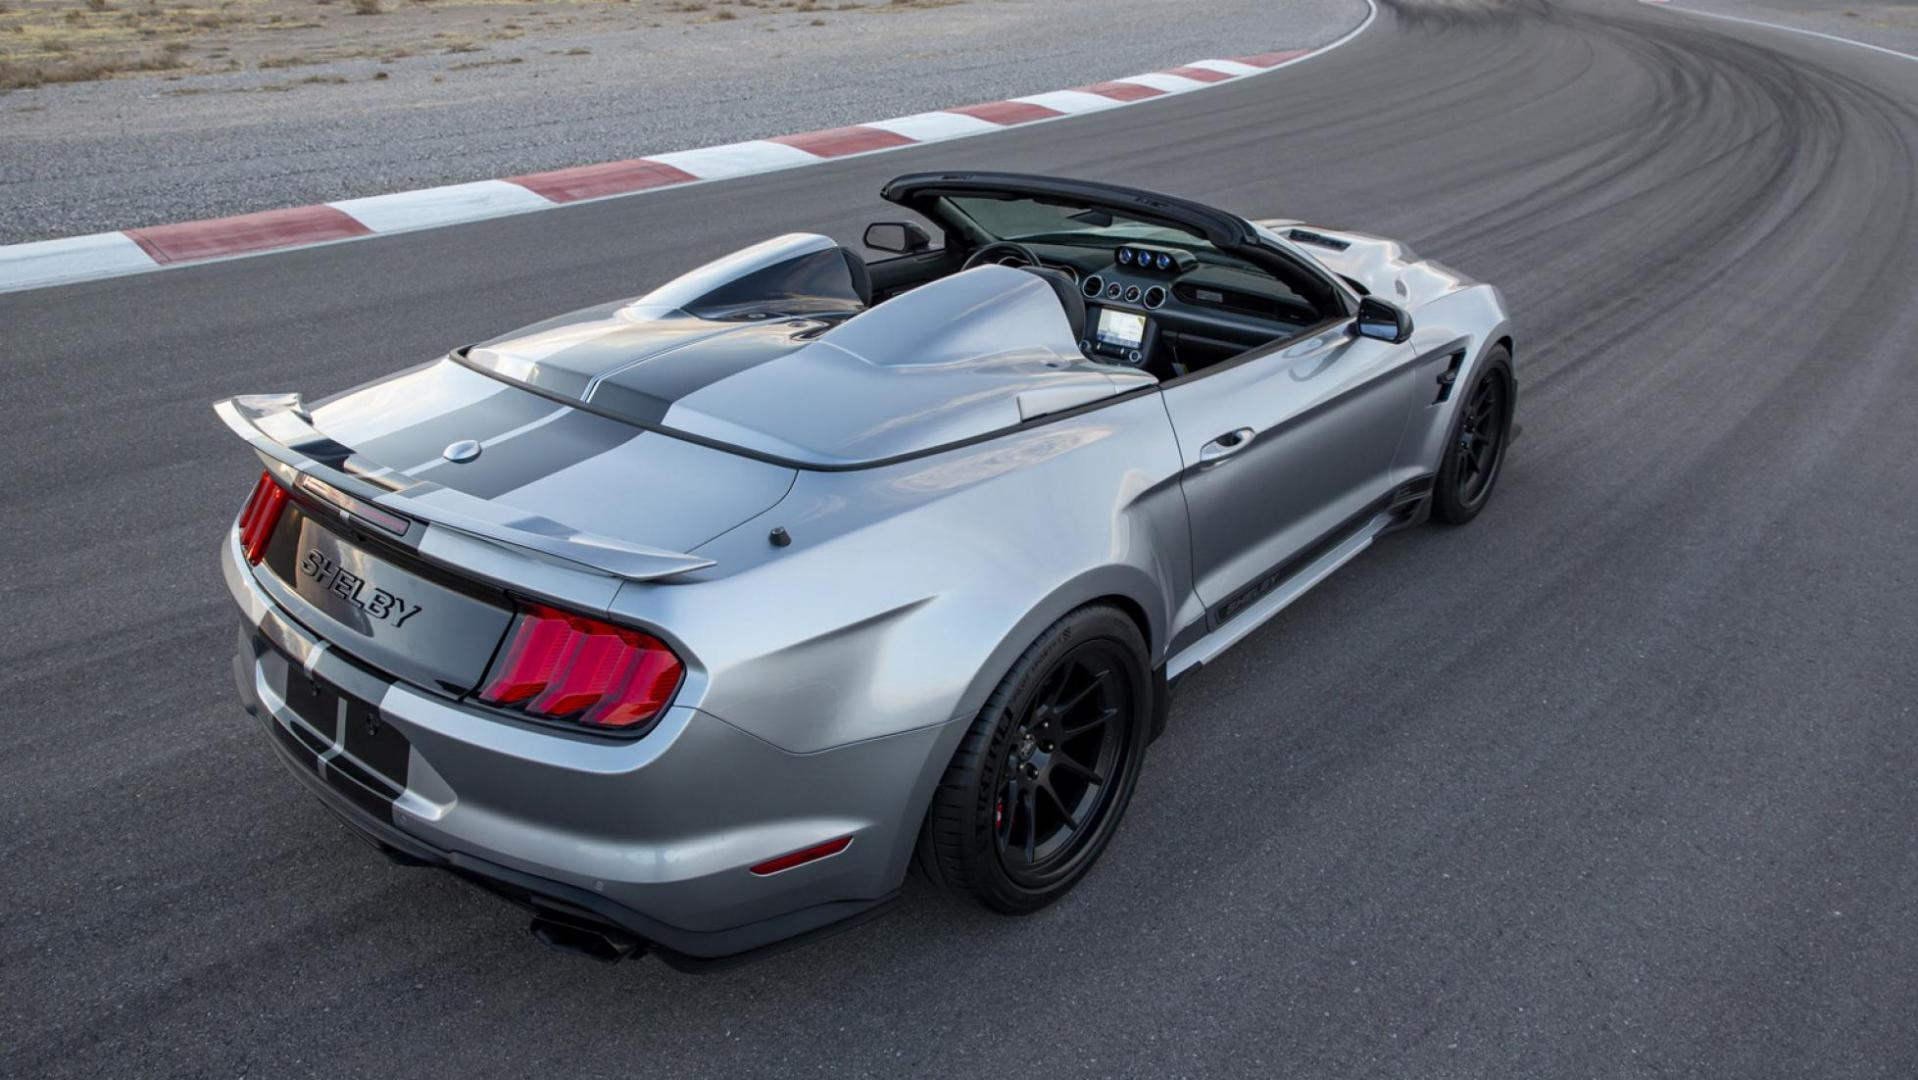 Ford Mustang Shelby Super Snake Speedster (2021) tonneau cover